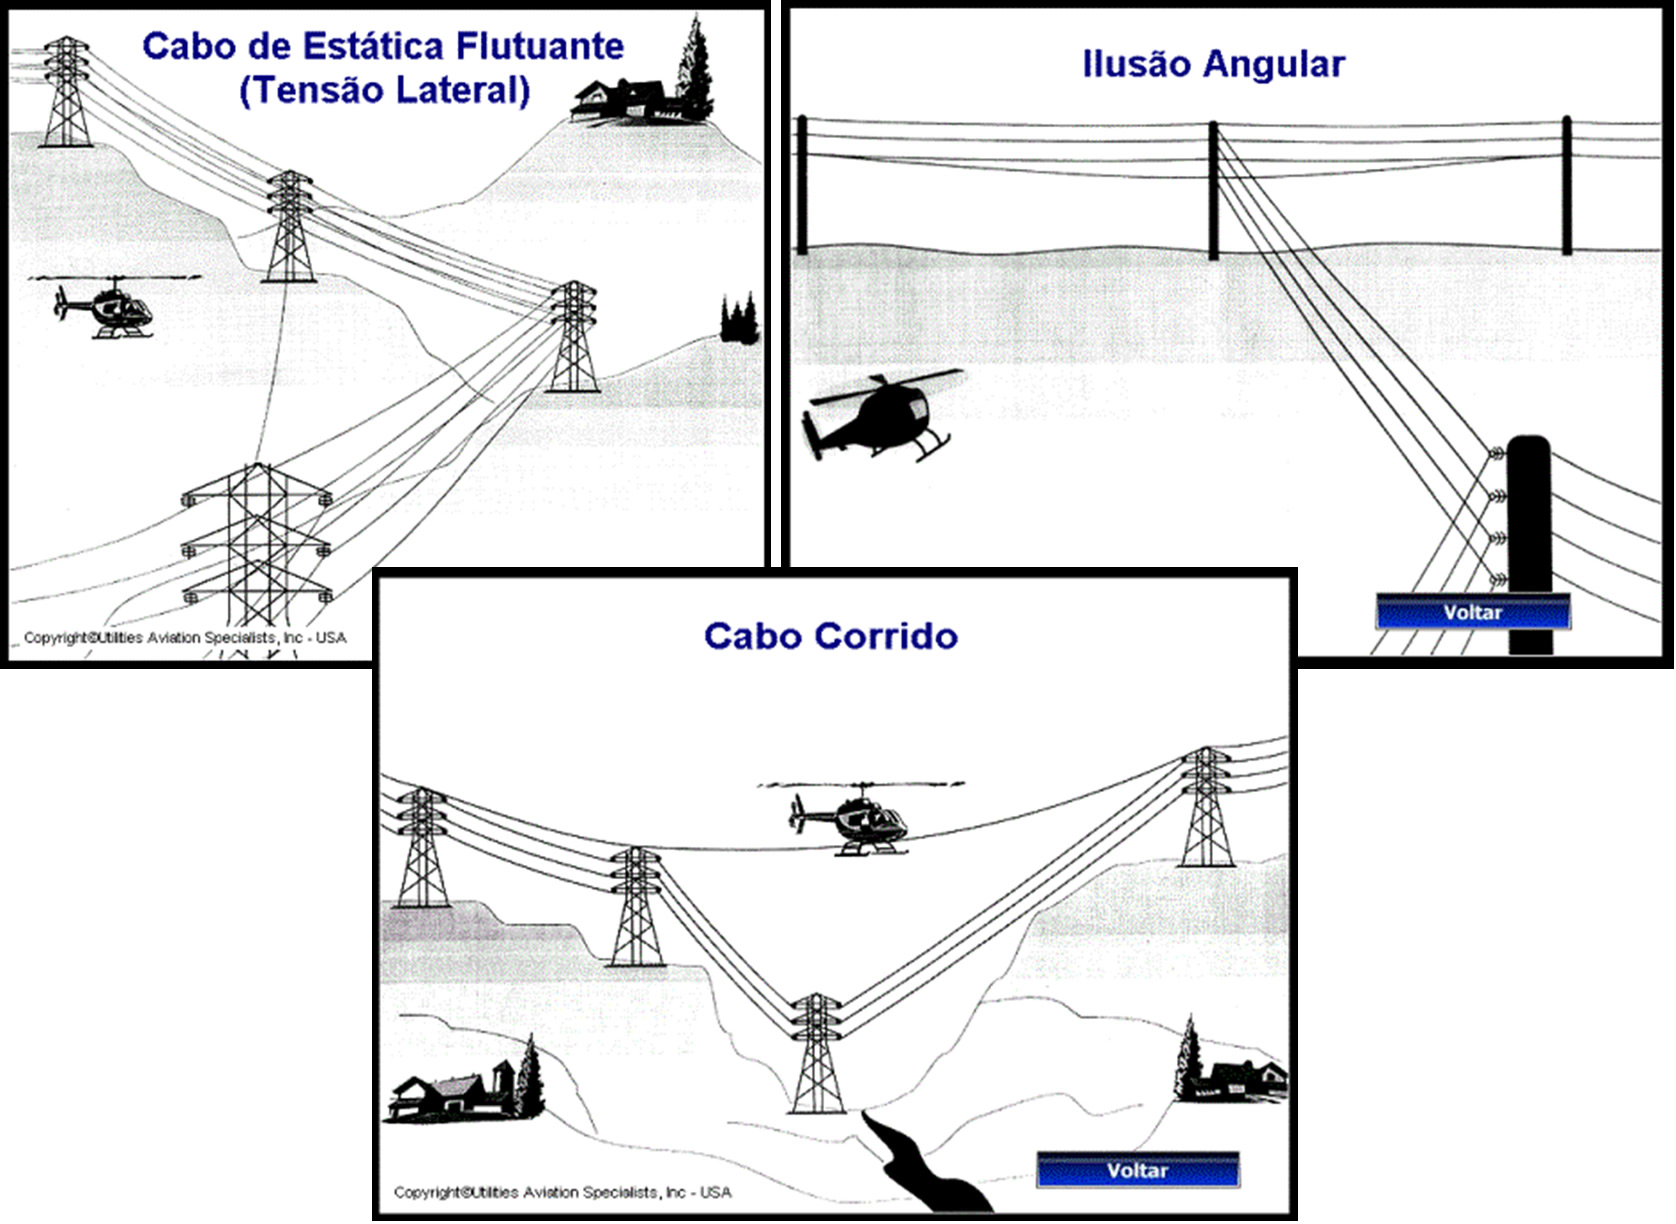 http://www.helicoptersafety.com/index.jsp